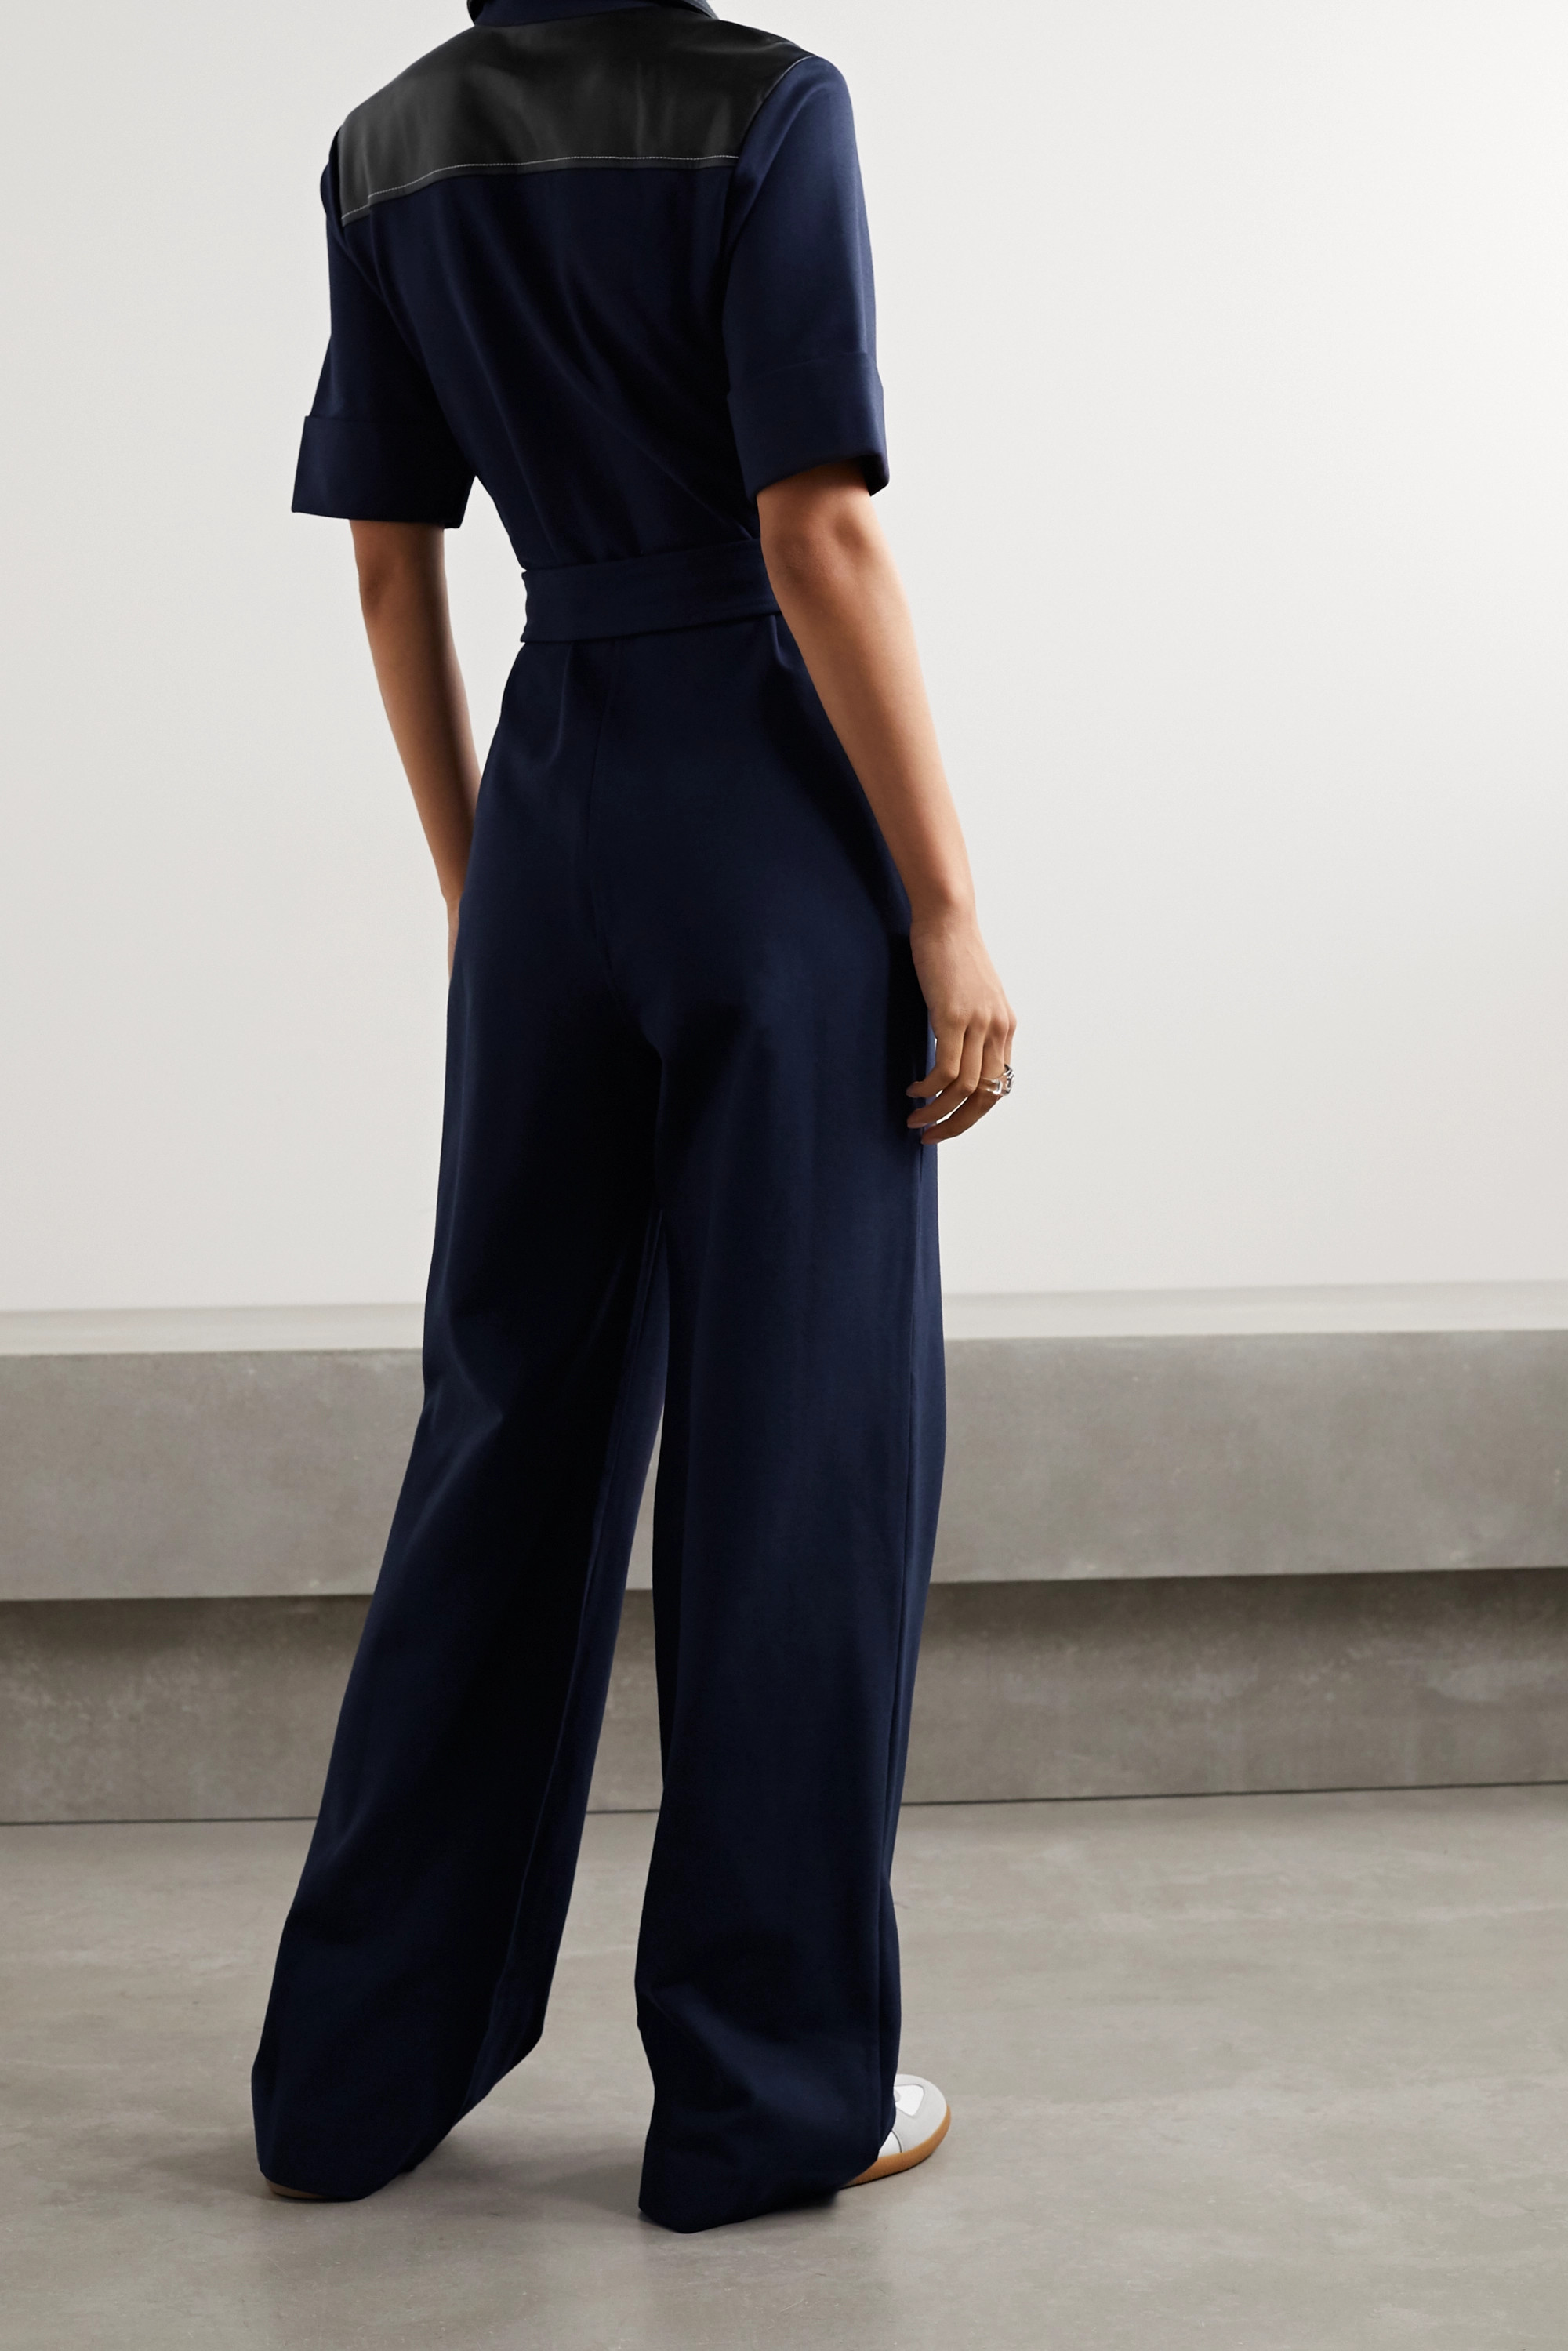 STAUD Davey belted faux leather-trimmed stretch-jersey jumpsuit